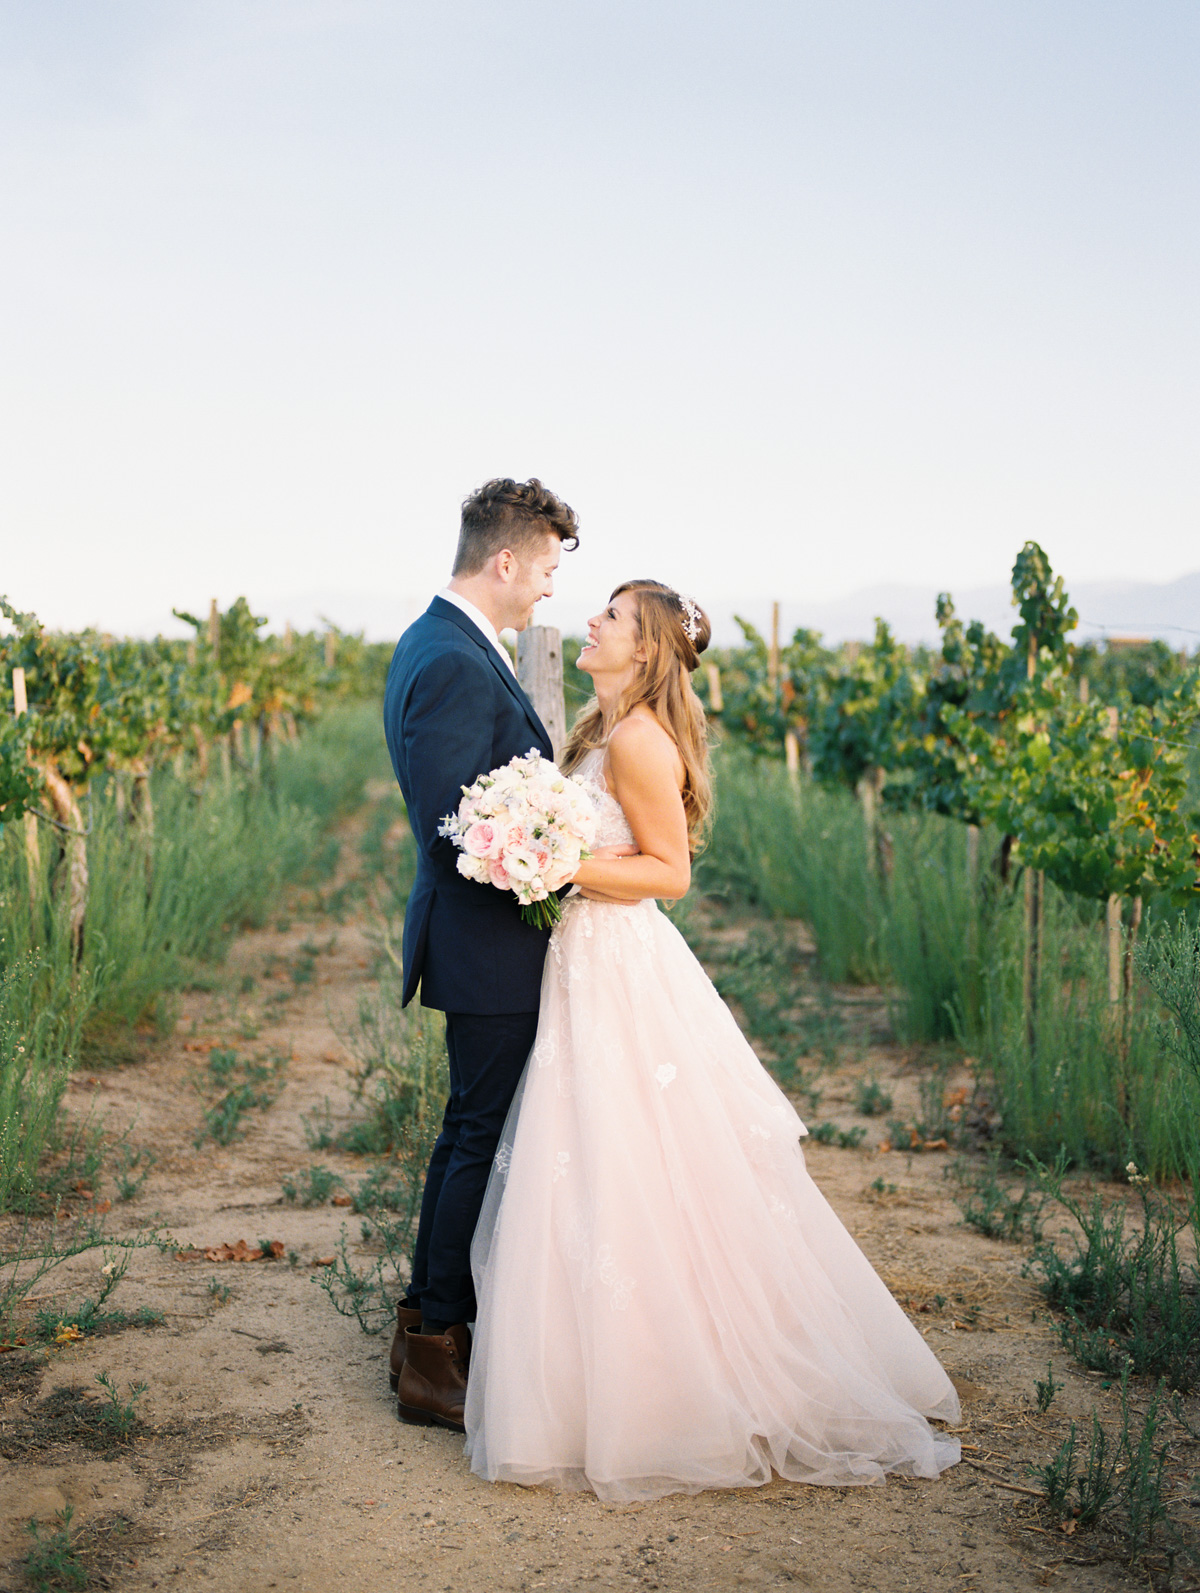 Bride & groom laughing at each other | Harrison & Jocelyne's gorgeous Temecula wedding day at Wiens Family Cellars captured by Temecula wedding photographers Betsy & John